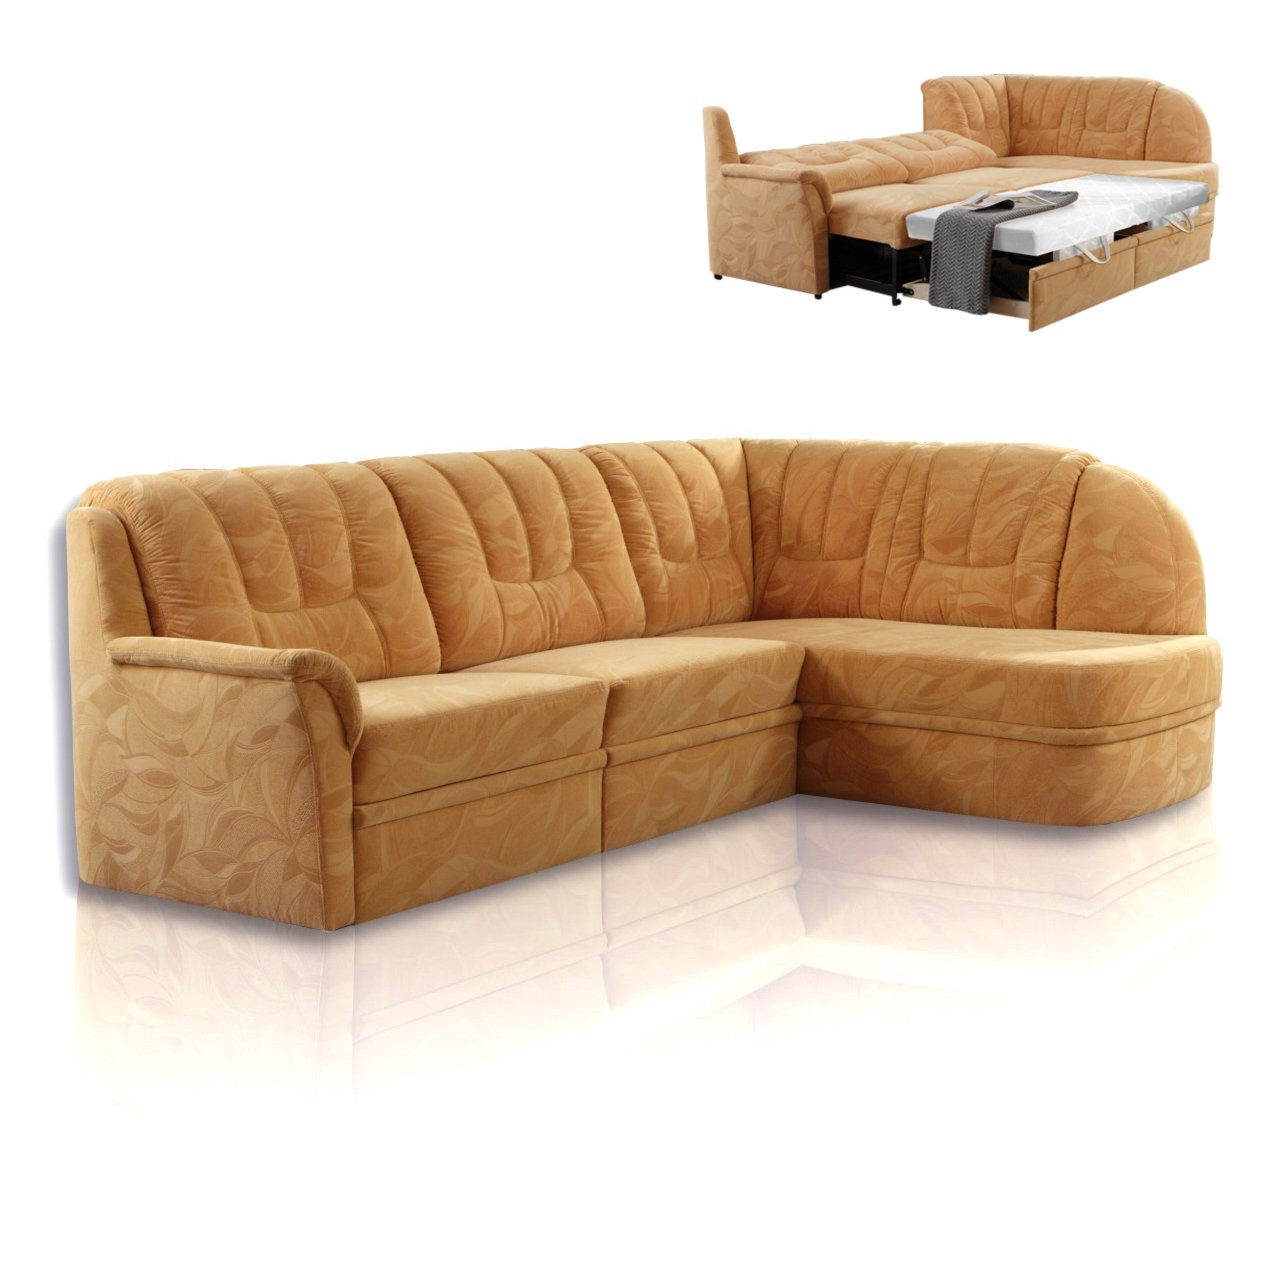 ecksofa sand flockstoff liegefunktion ecksofas l form sofas couches m bel roller. Black Bedroom Furniture Sets. Home Design Ideas